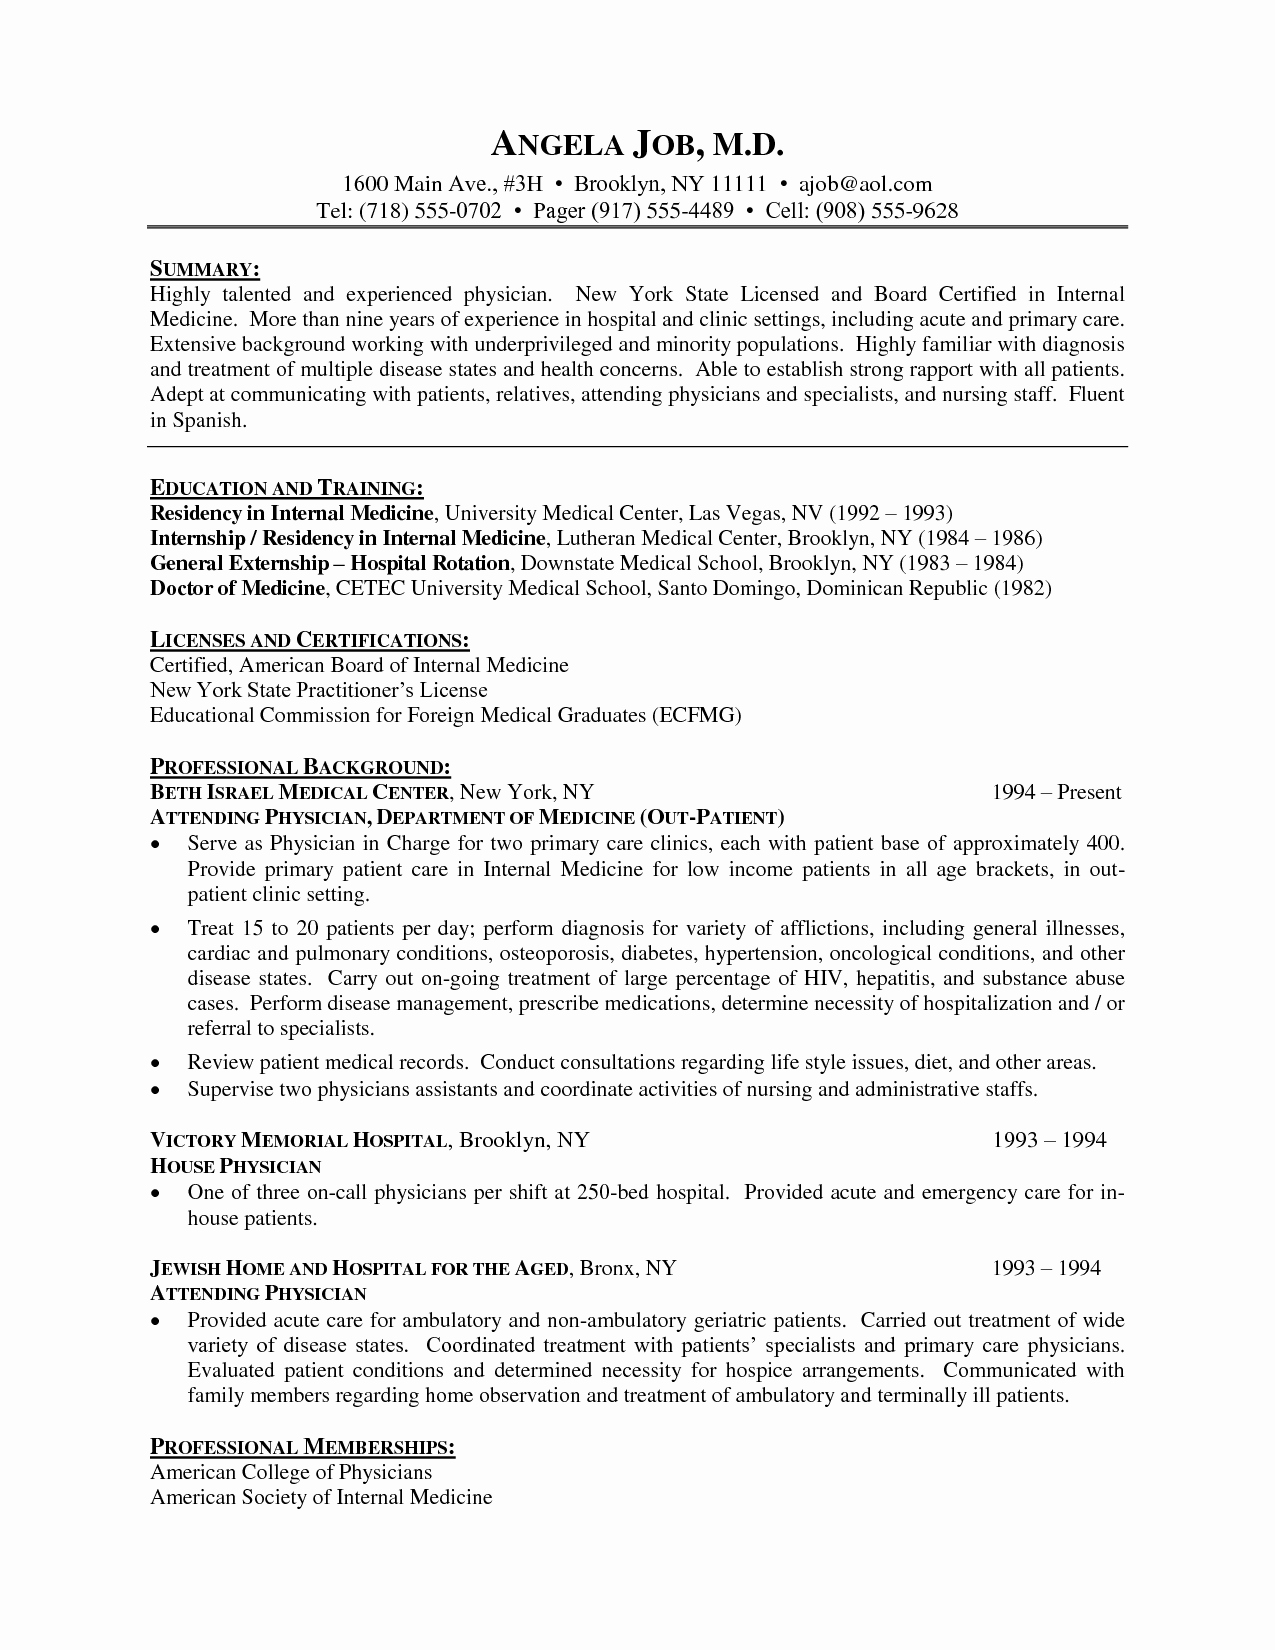 Medical Cv Template Word Unique Resume Template Medical Doctor Cv Resume Physician Cv